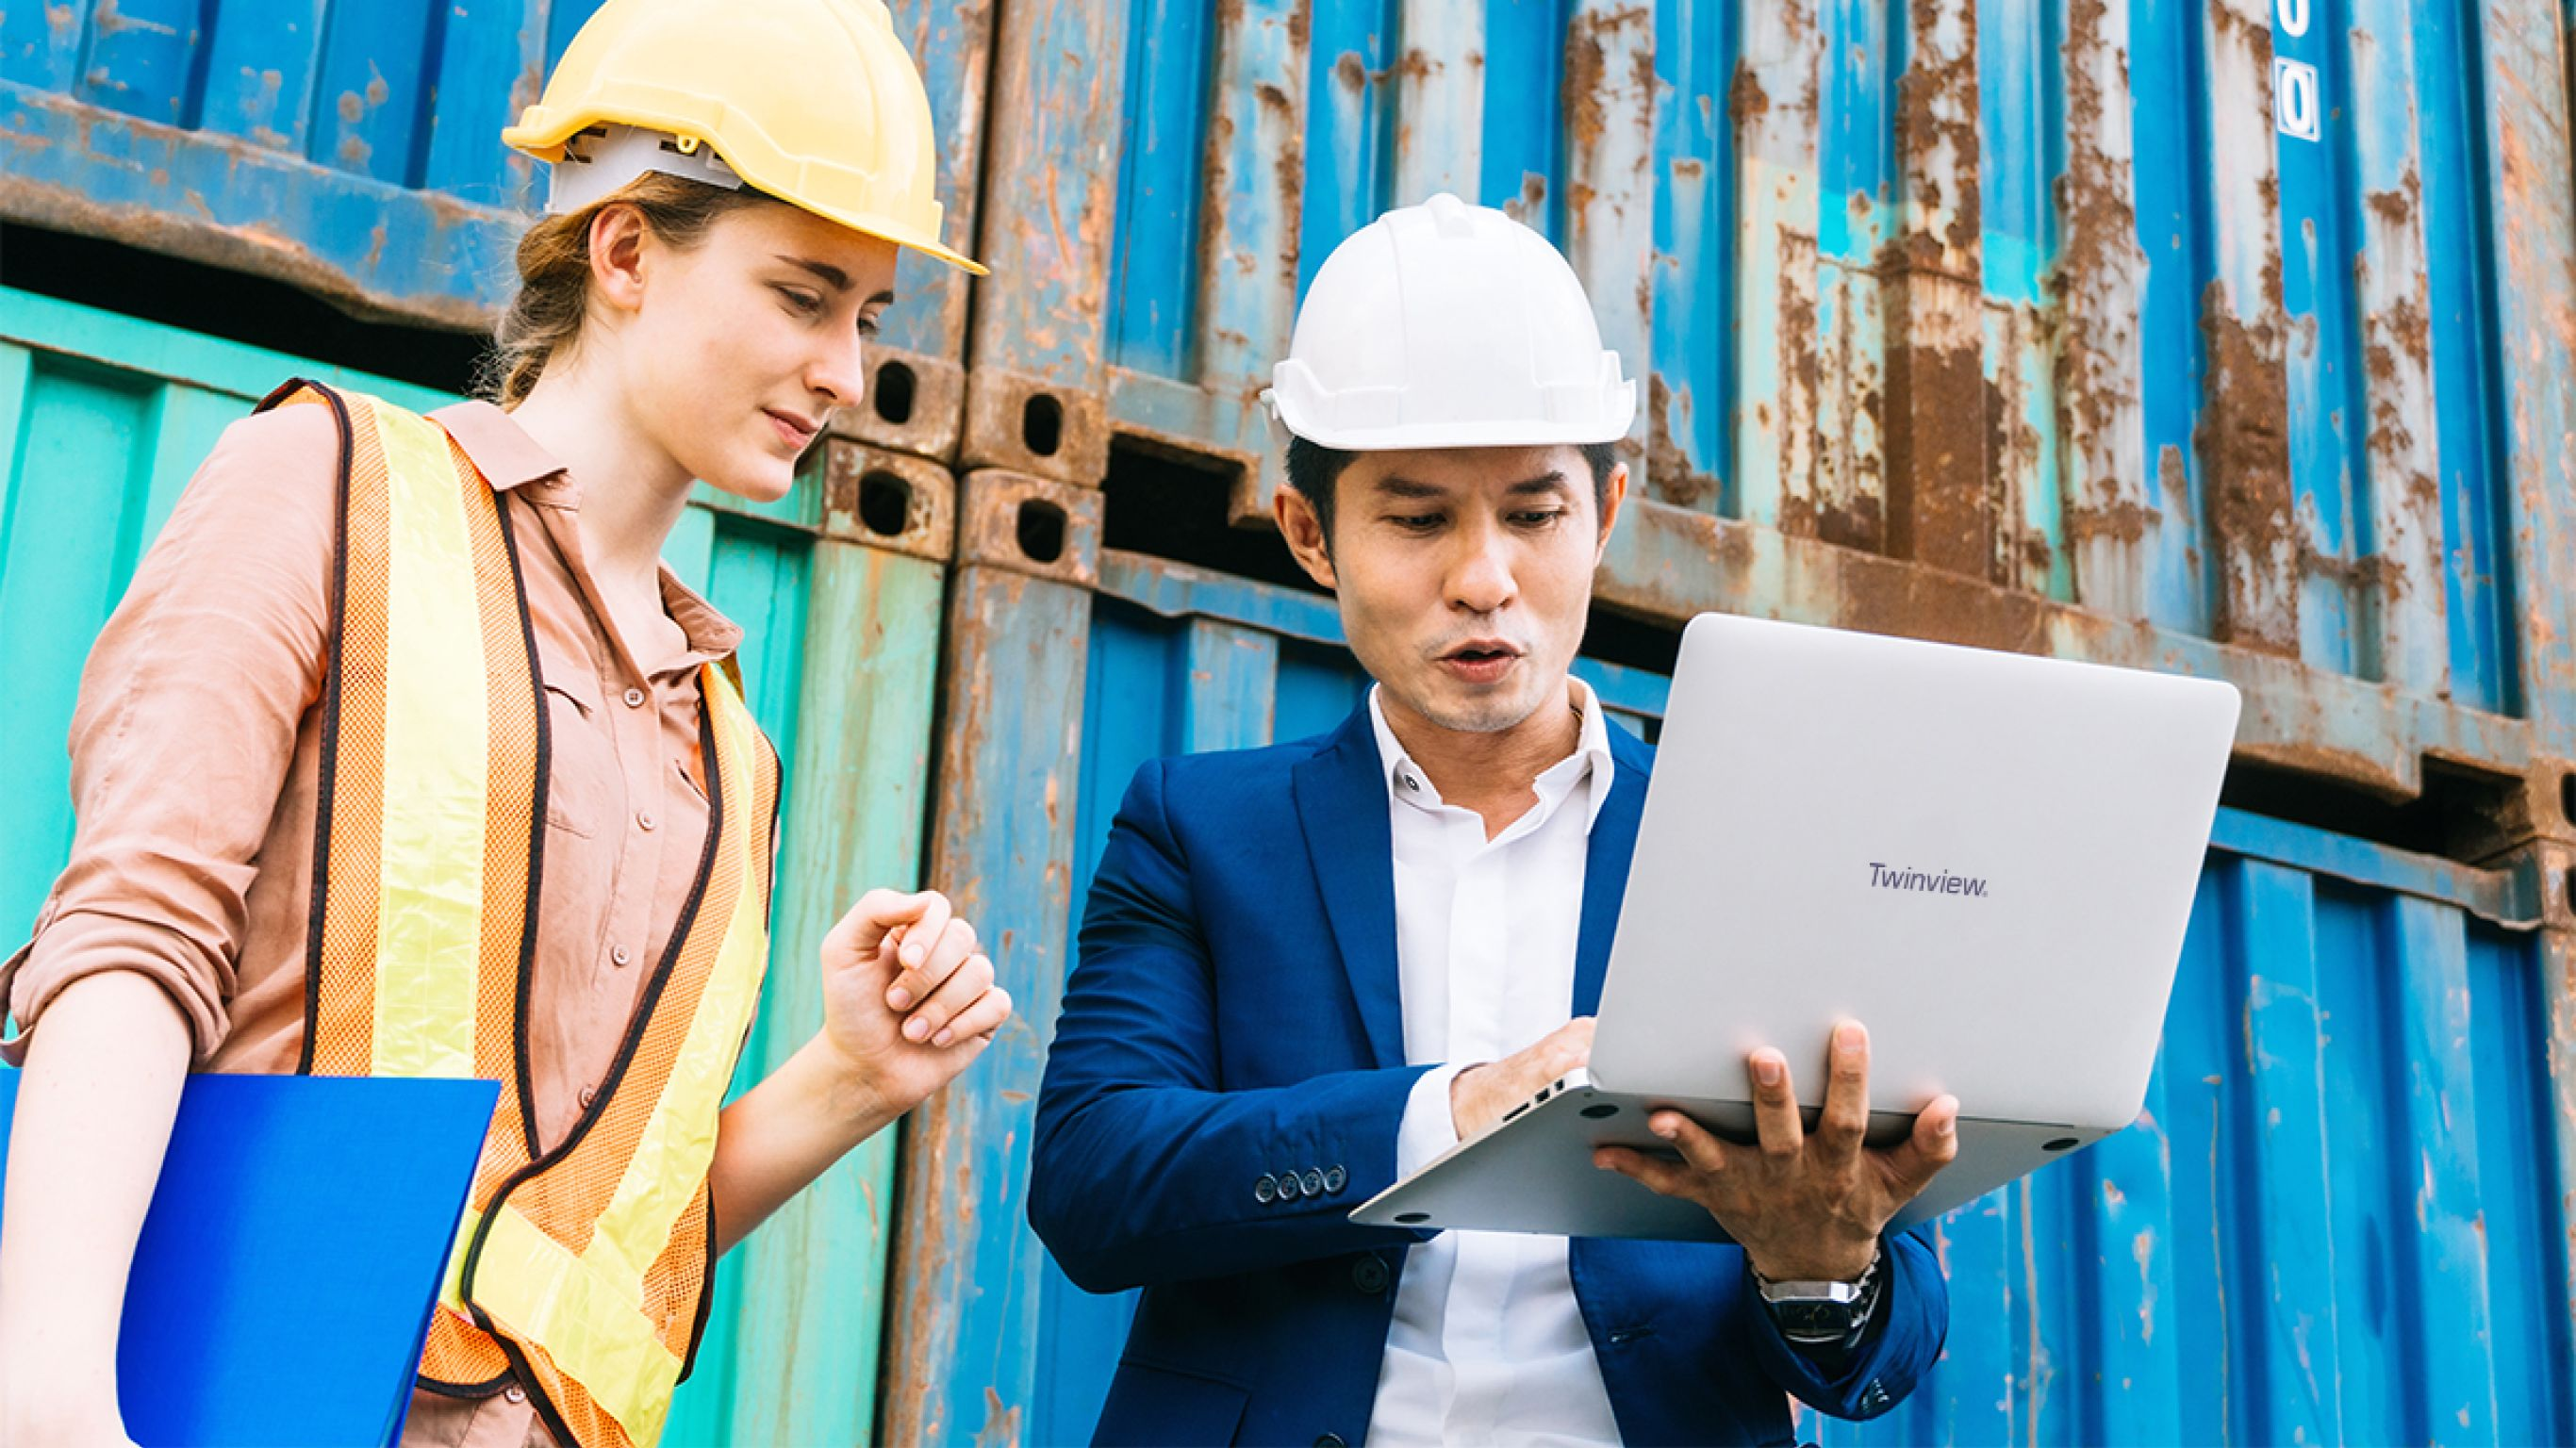 Using Twinview during Construction